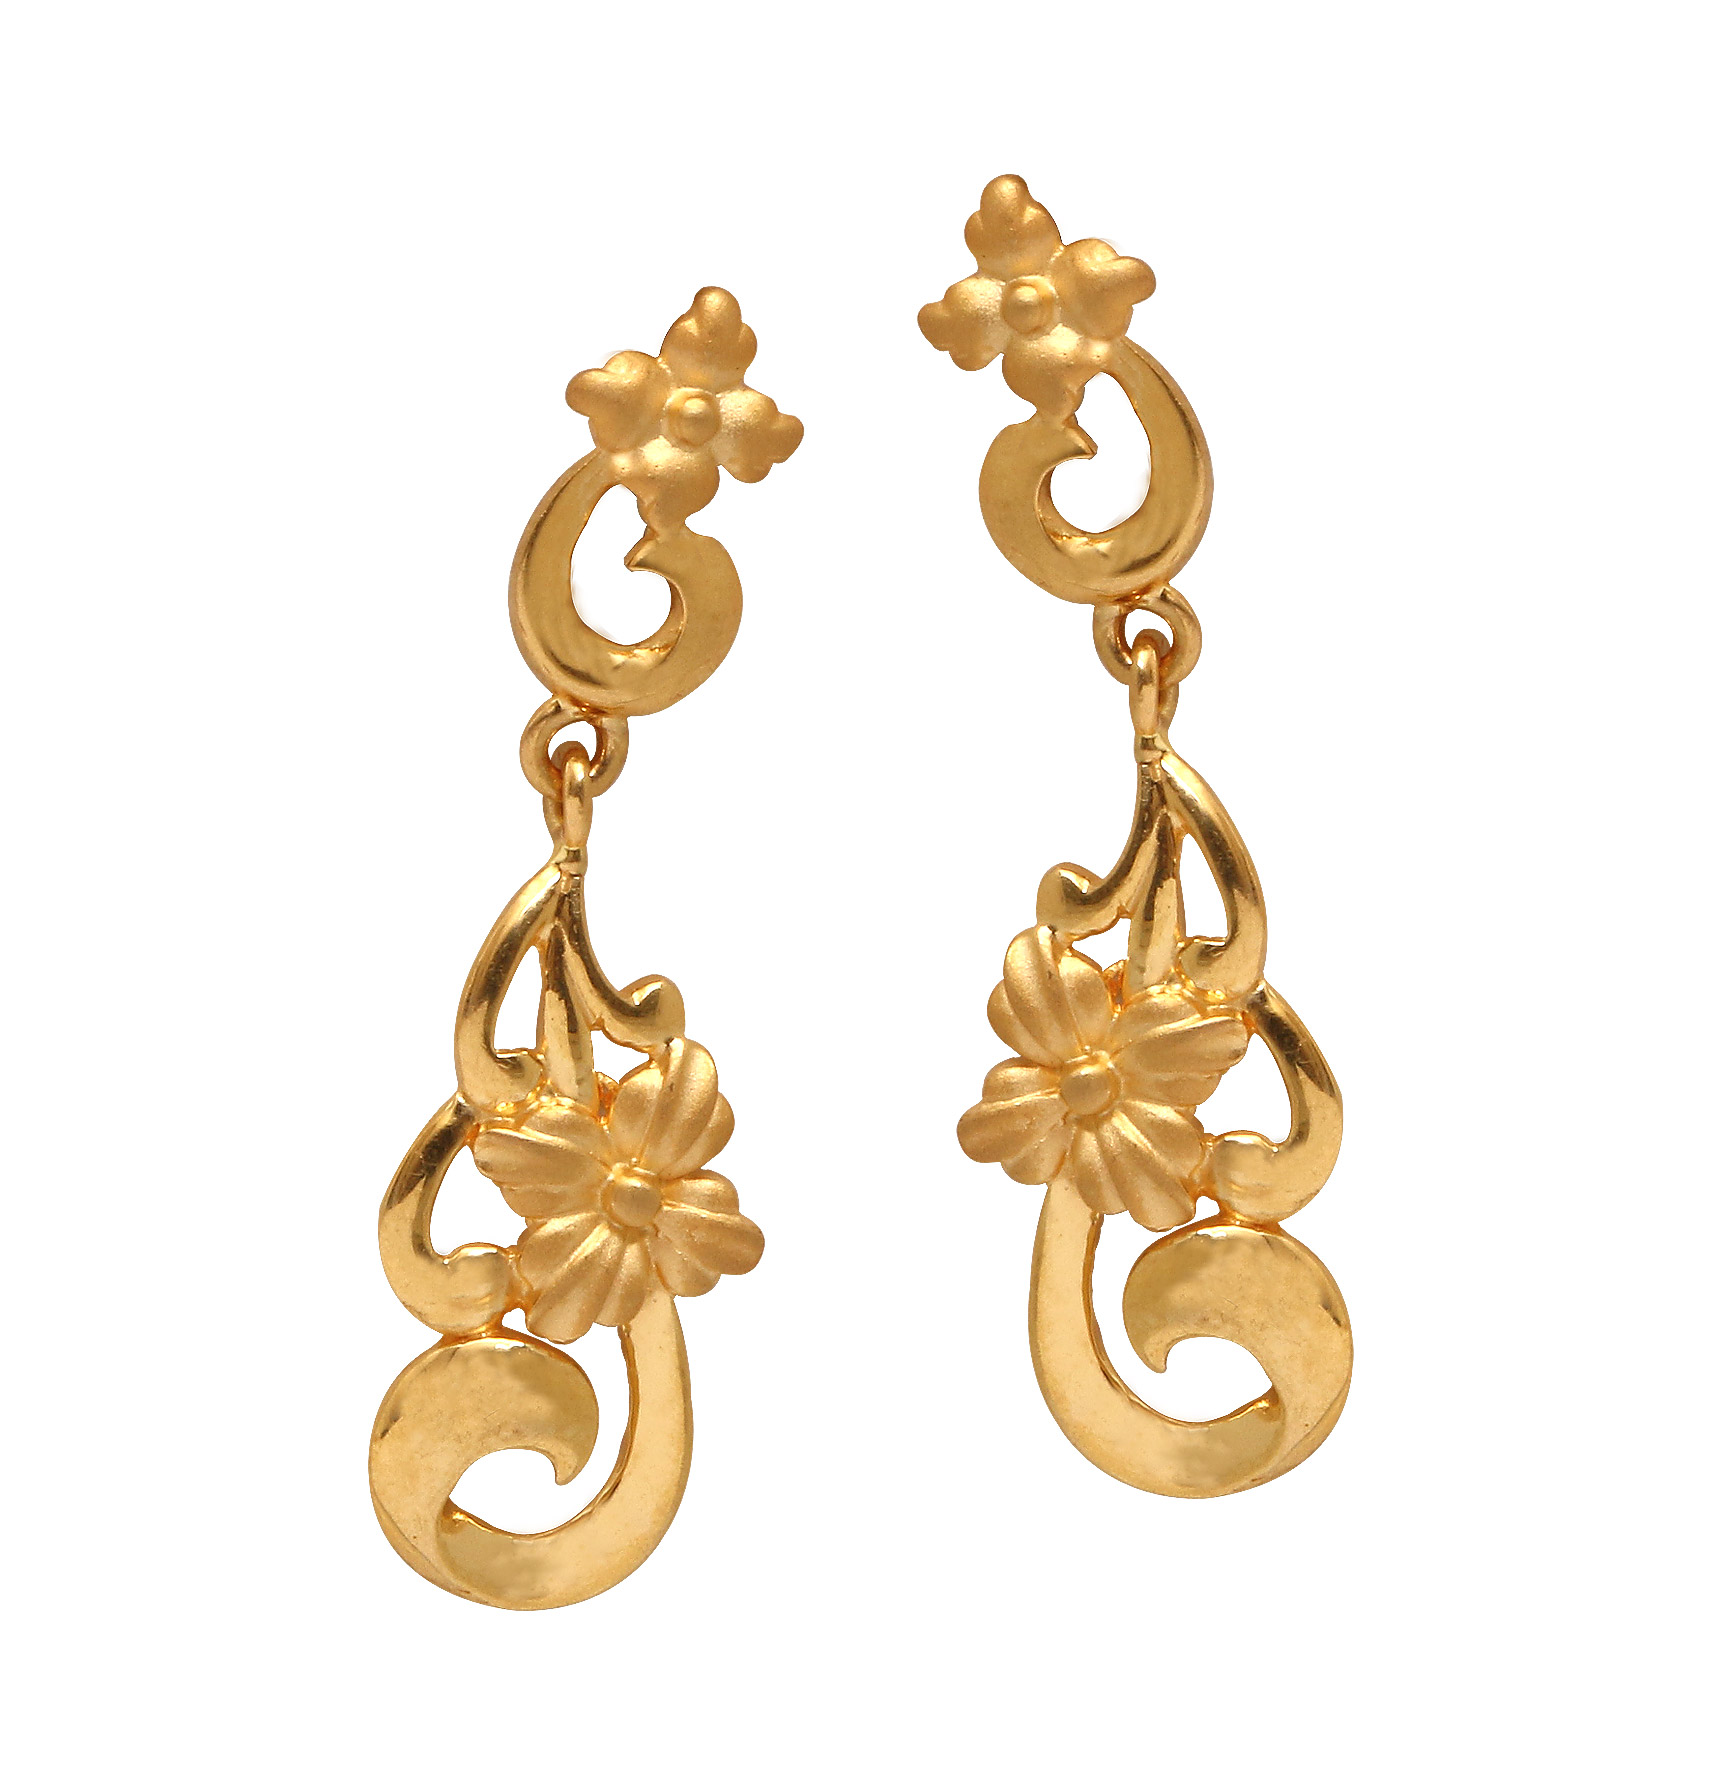 The Alainna Fl Gold Earrings